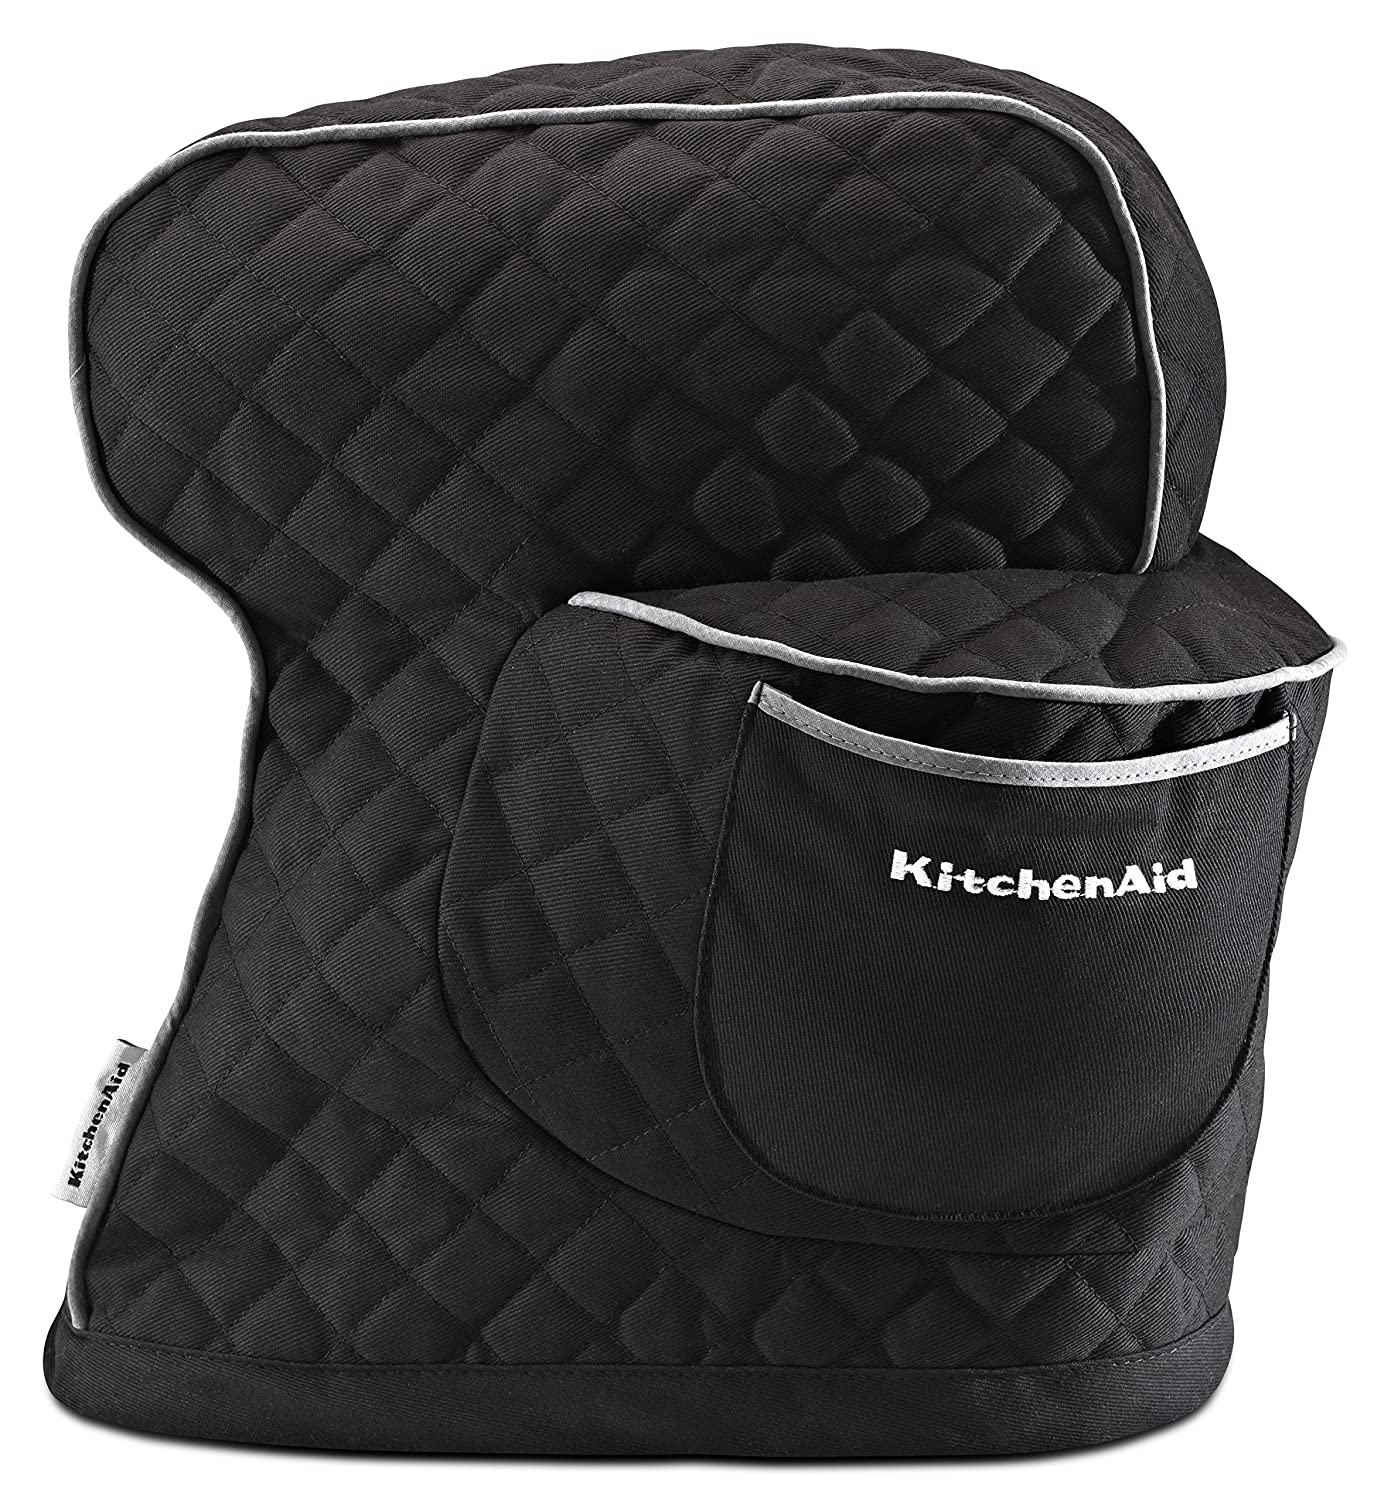 KitchenAid KSMCT1OB Fitted Stand Mixer Cover - Onyx Black